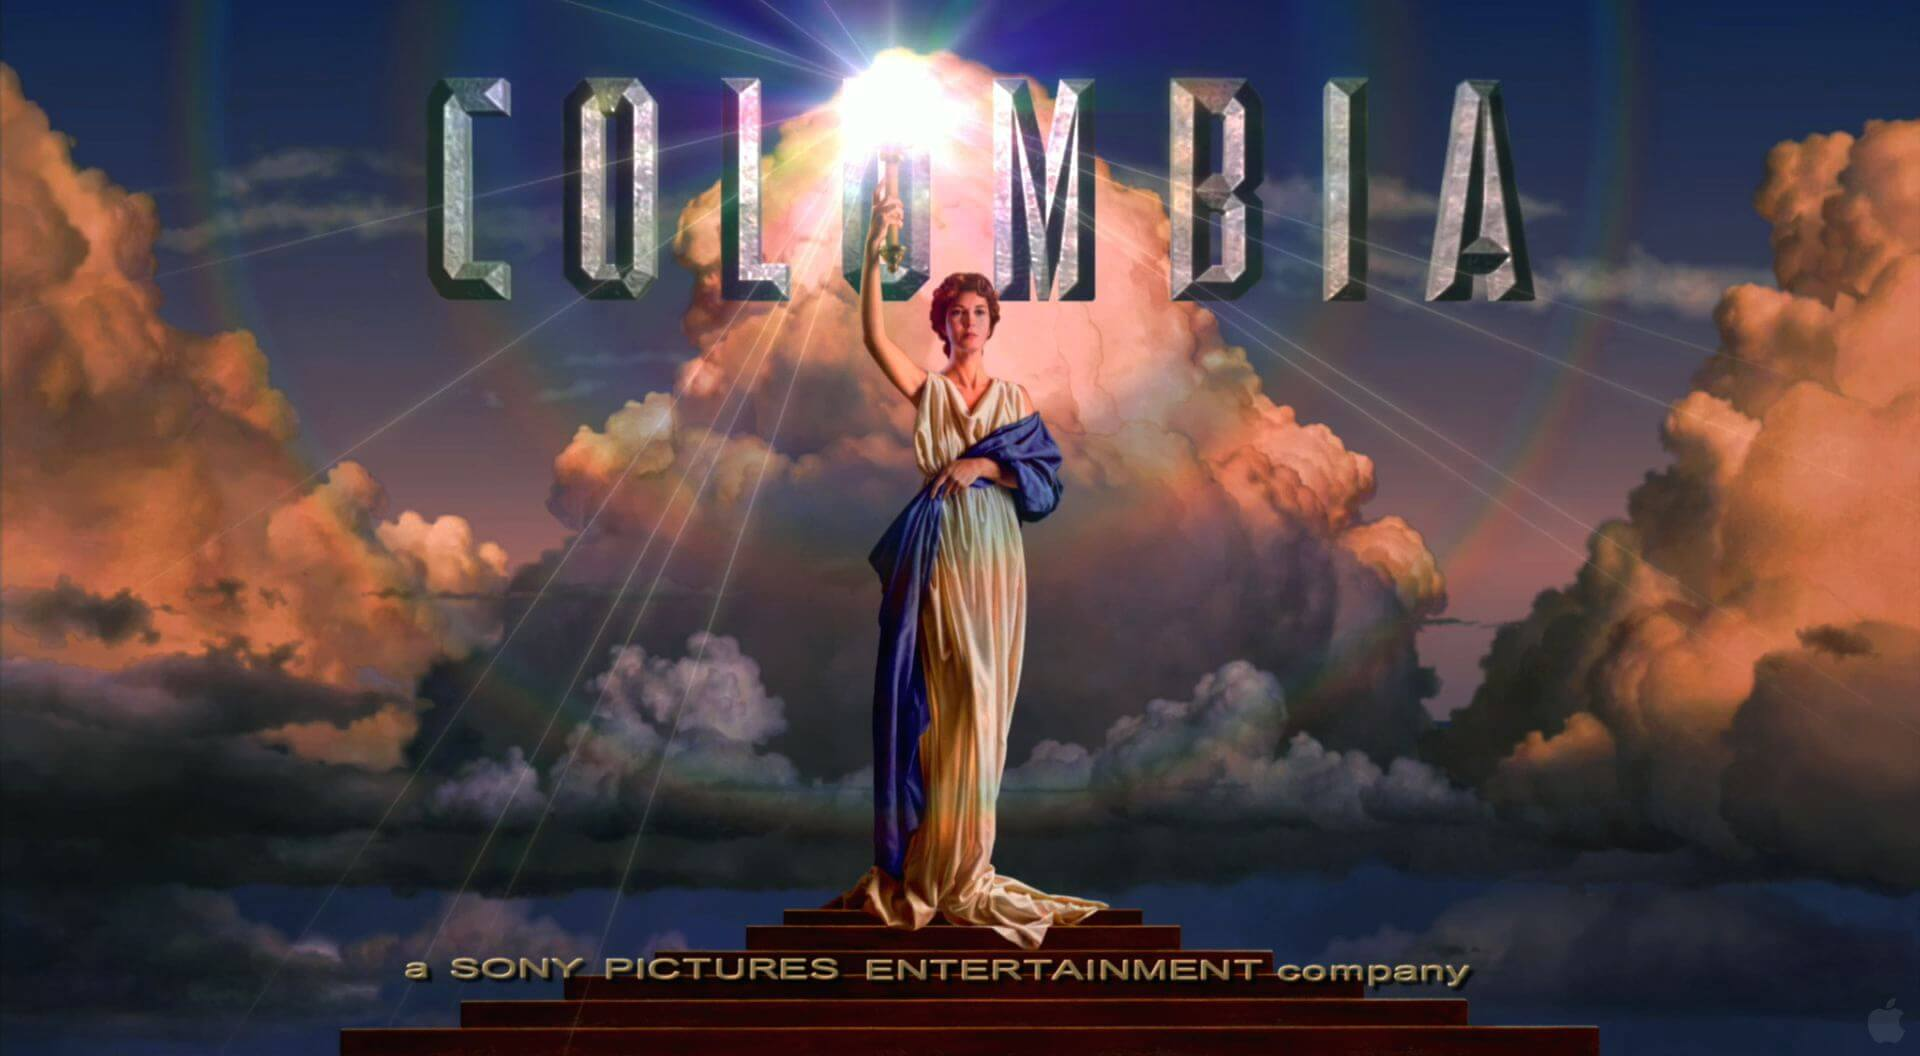 Columbia_Pictures -Most Popular Production Houses -Logos-min